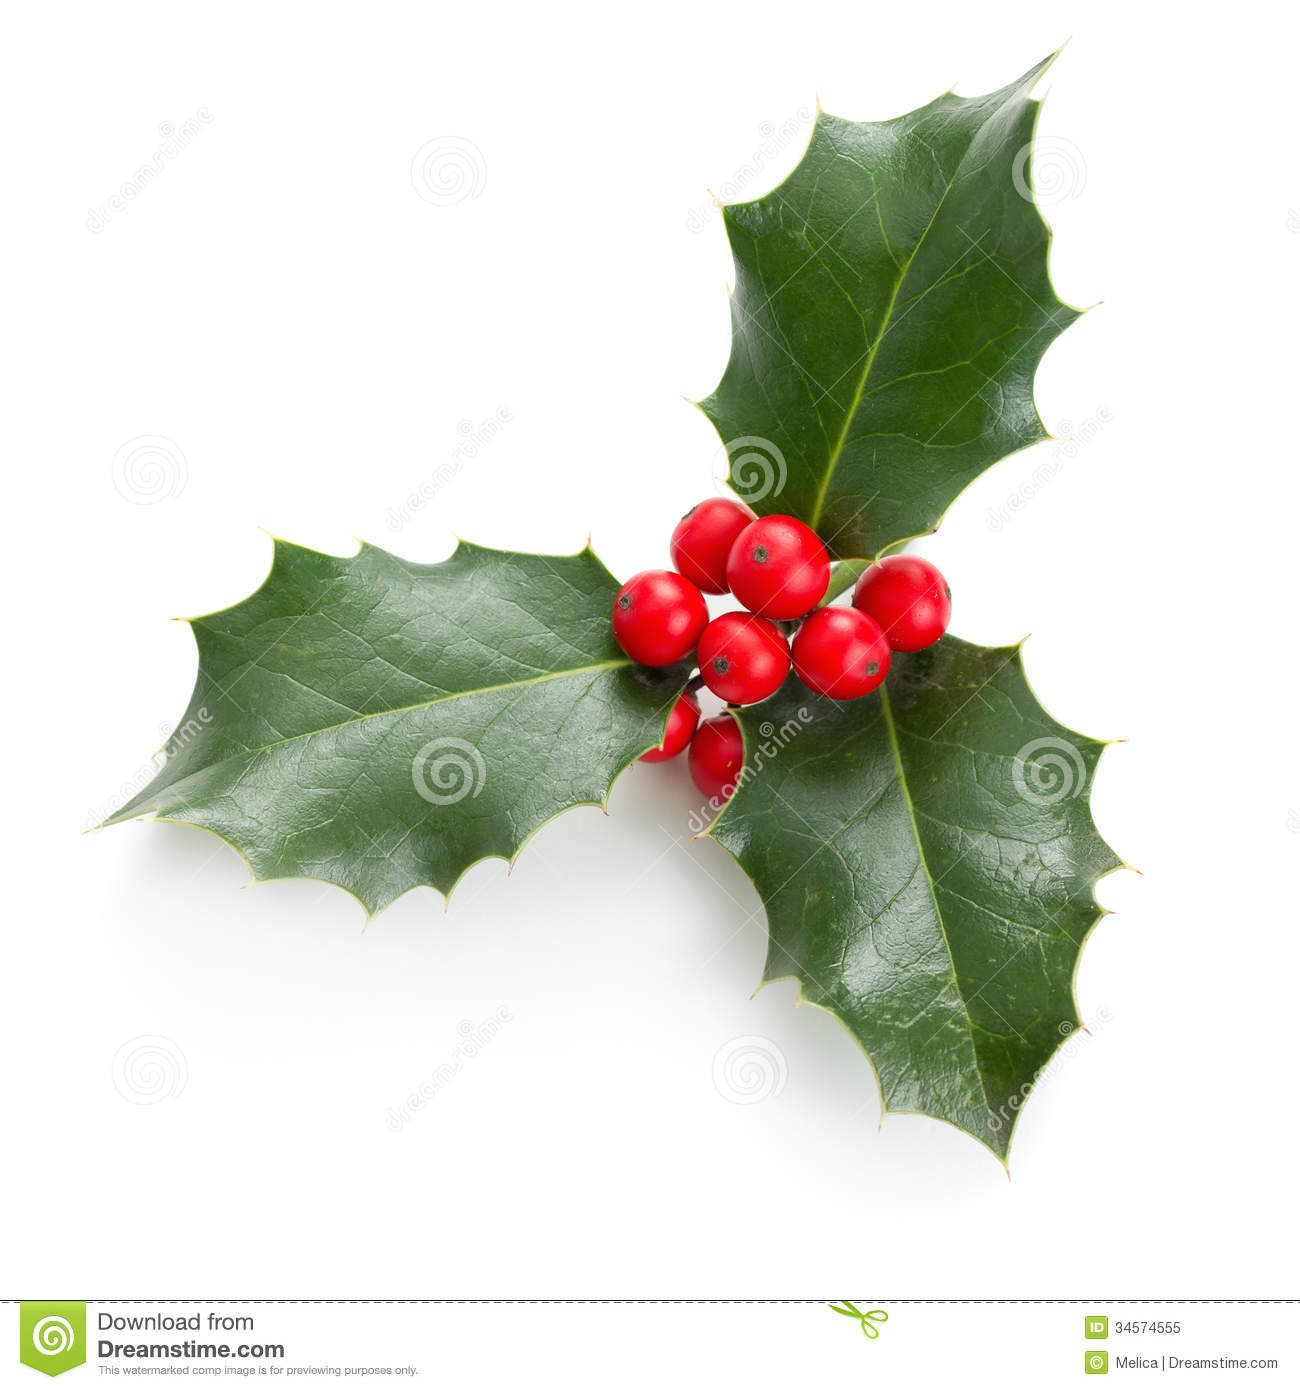 Holly Leaves And Berries Royalty Free Stock Photo - Image: 34574555